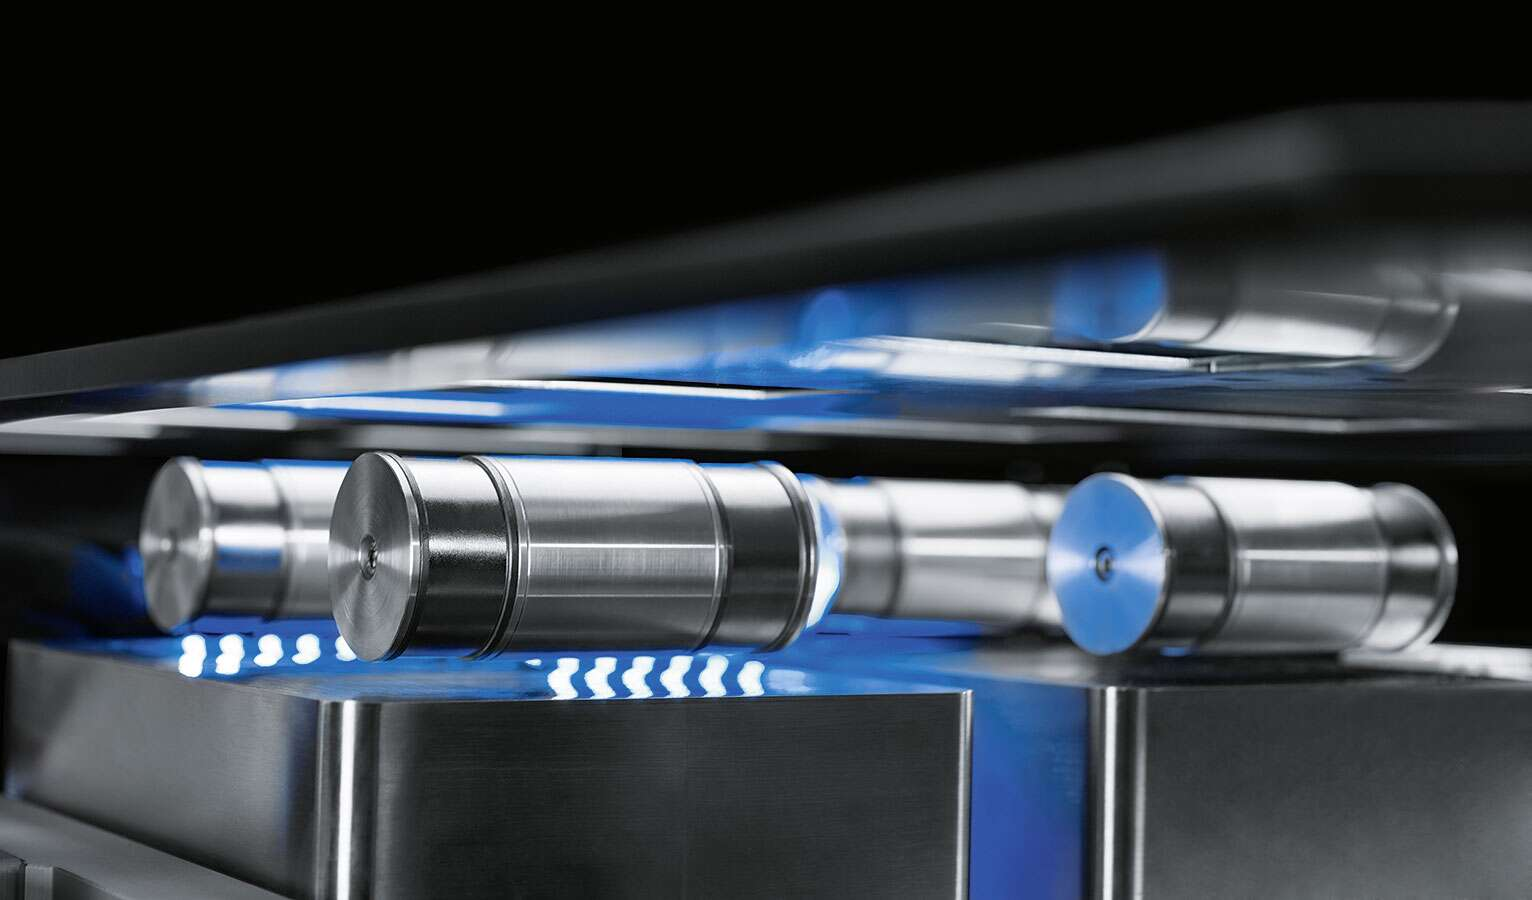 Festo presents three new projects on superconductivity